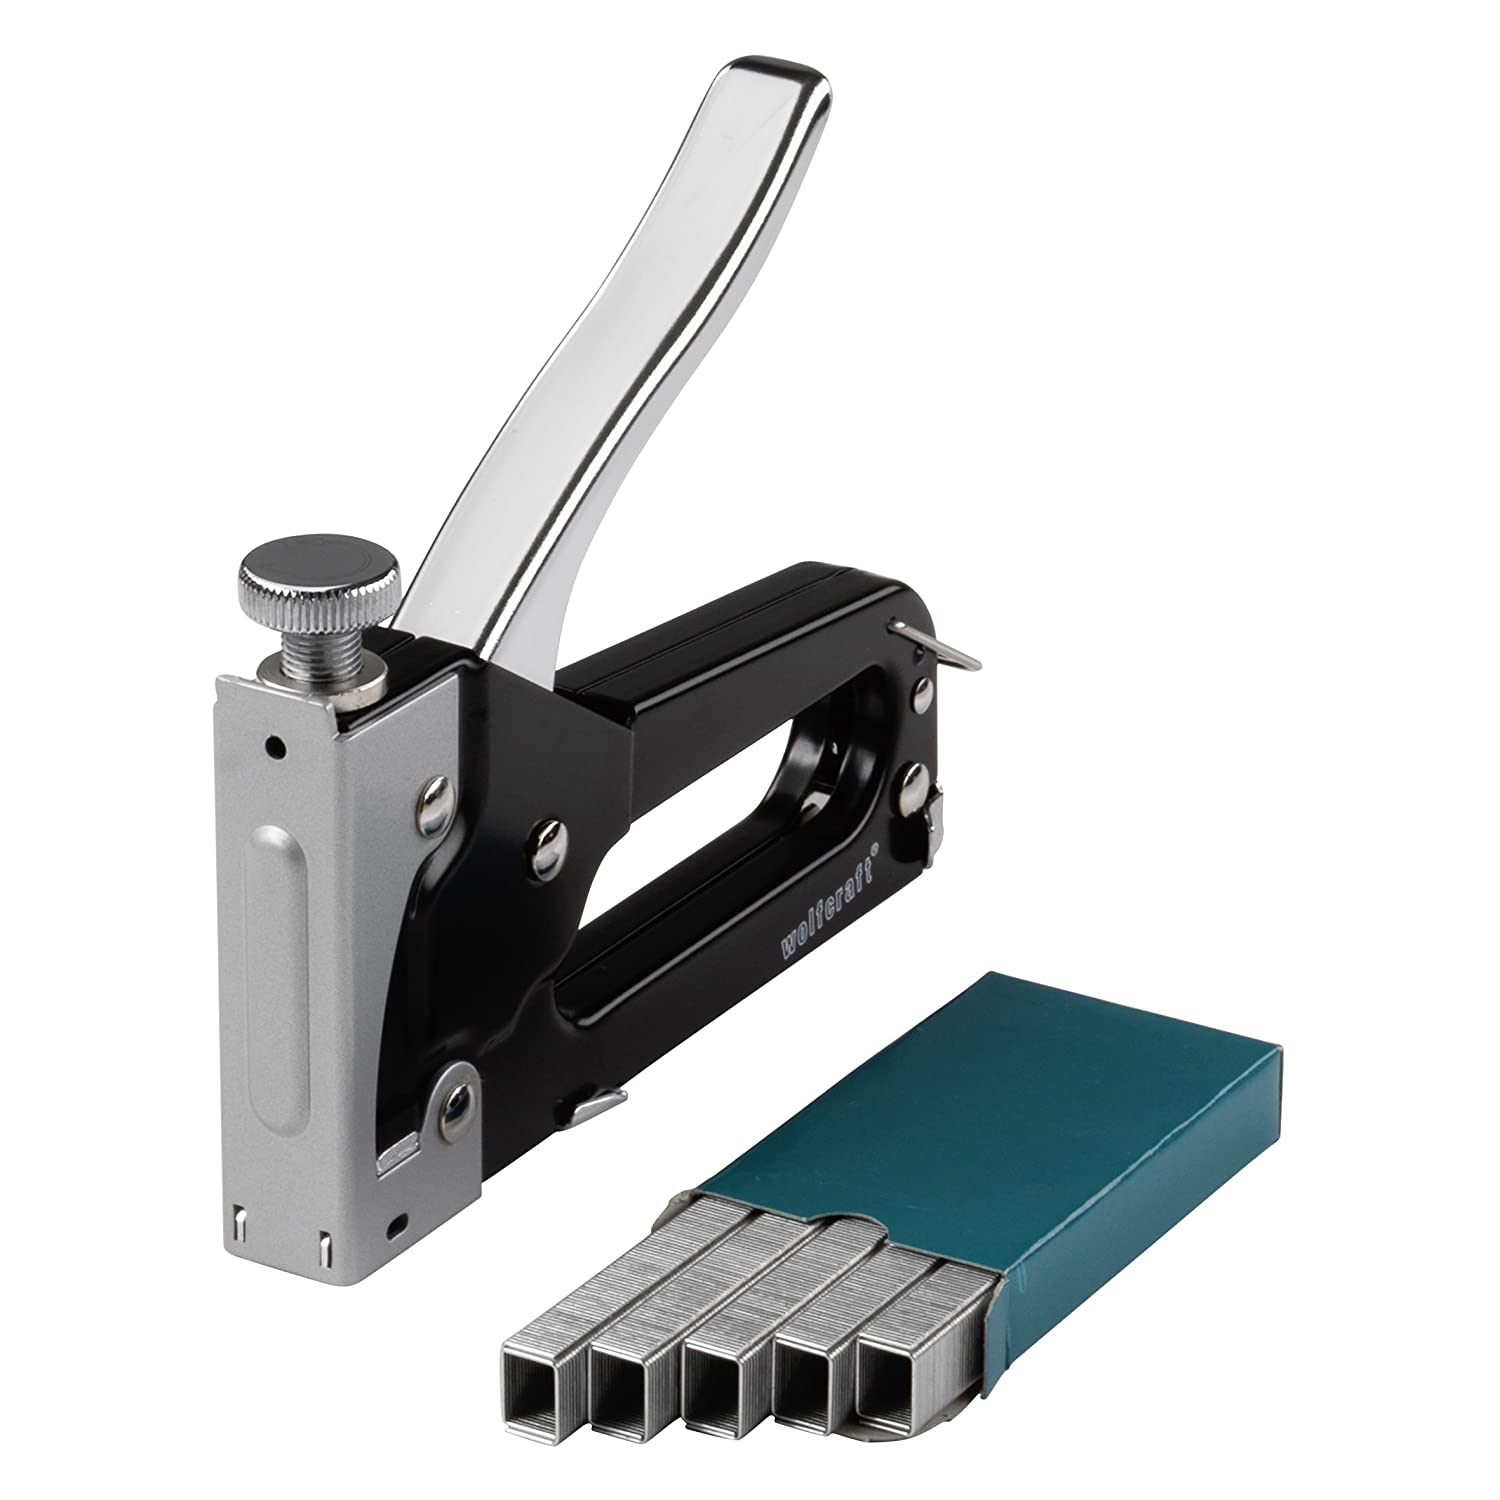 Wolfcraft 7088000 Tacker Set Tacocraft Type 053 Stapler with Metal Housing for 4-8mm Staples